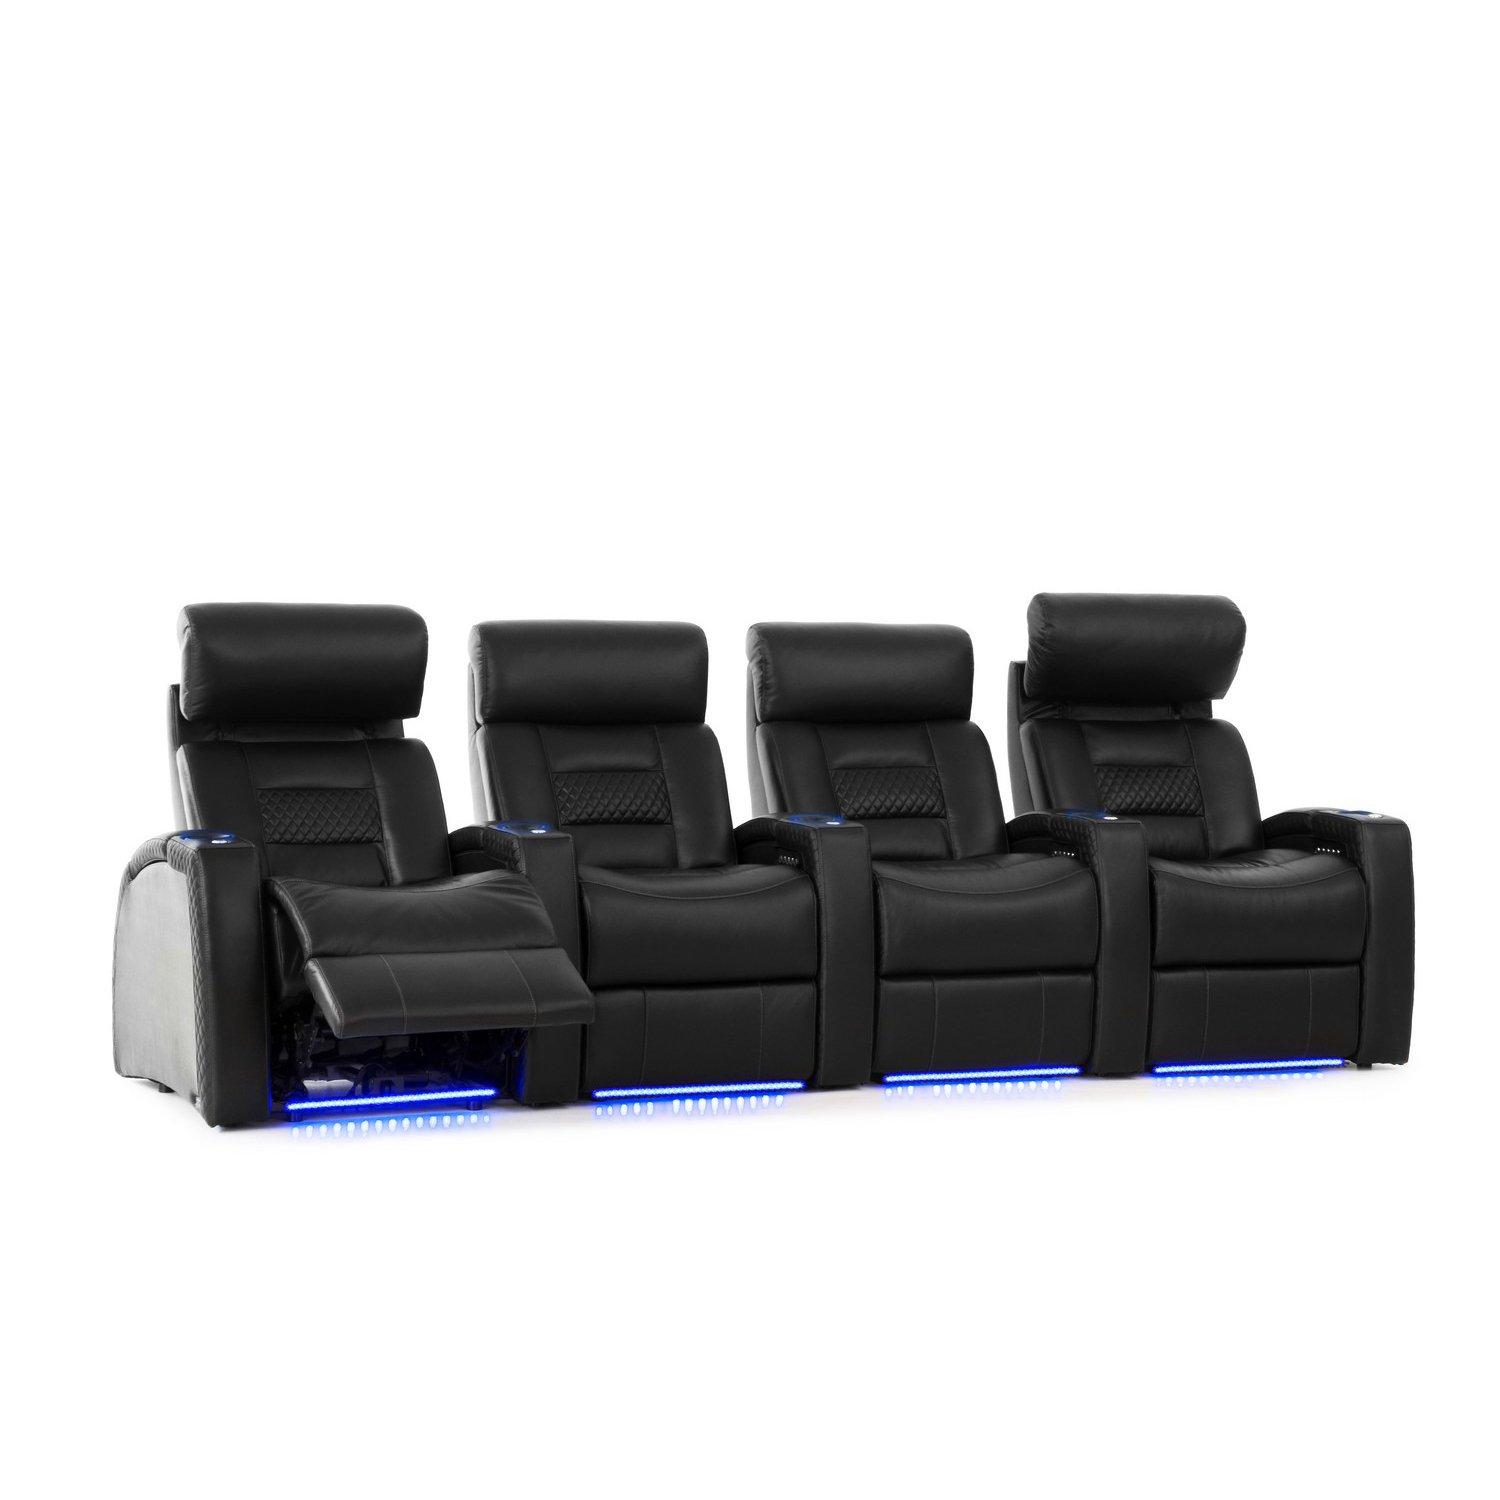 Octane Seating Flex HR Home Theater Seats - Black Top Grain Leather - Power Recline - Row of 4 by Octane Seating